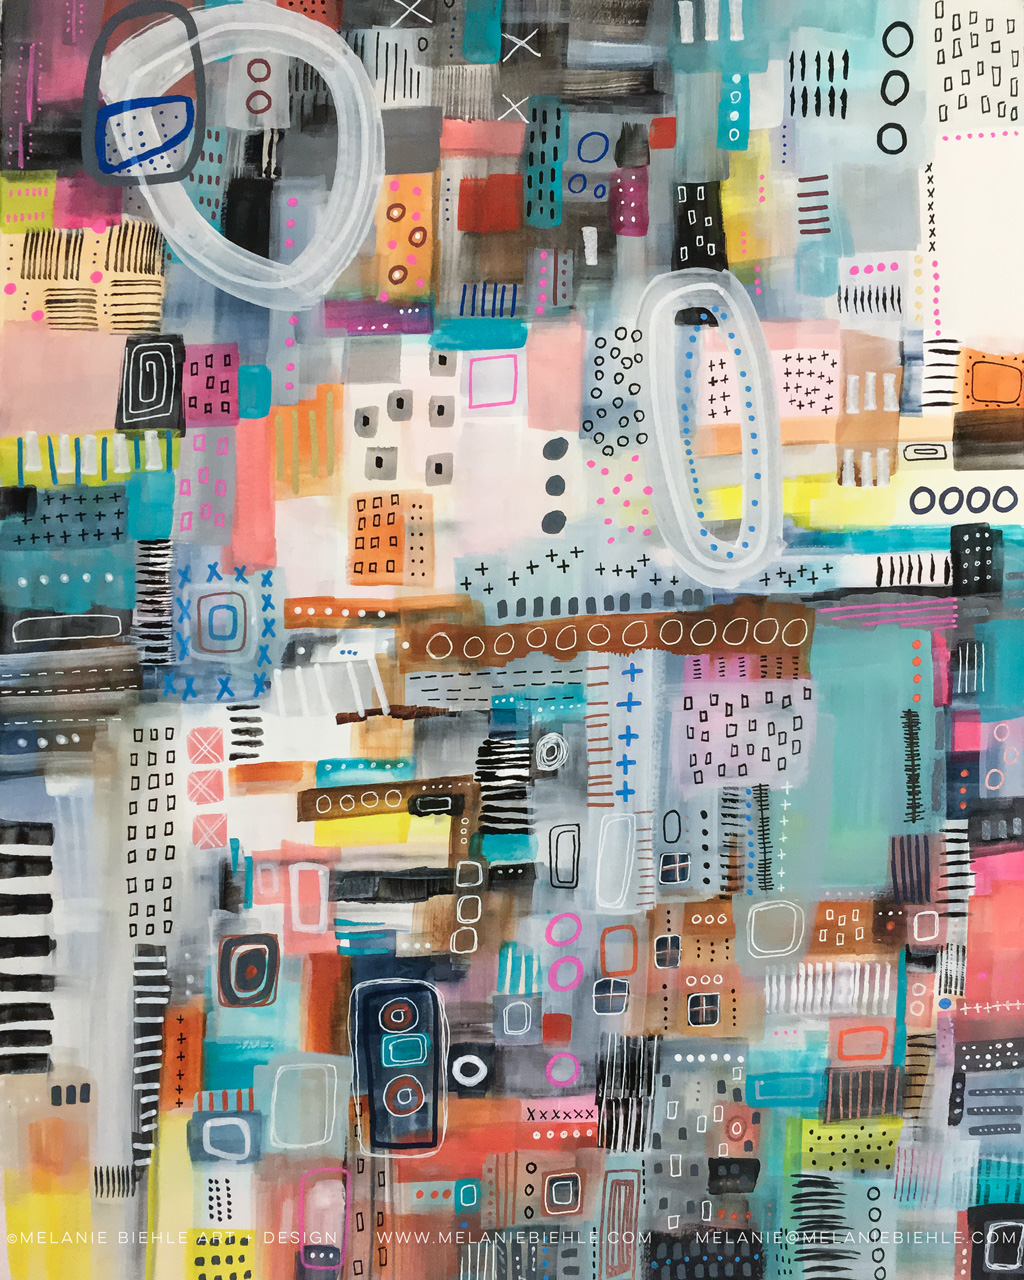 Comfort and Joy | Abstract Cityscape Mixed Media Painting by Melanie Biehle | watercolor, gouache, acrylic, ink | December 2016